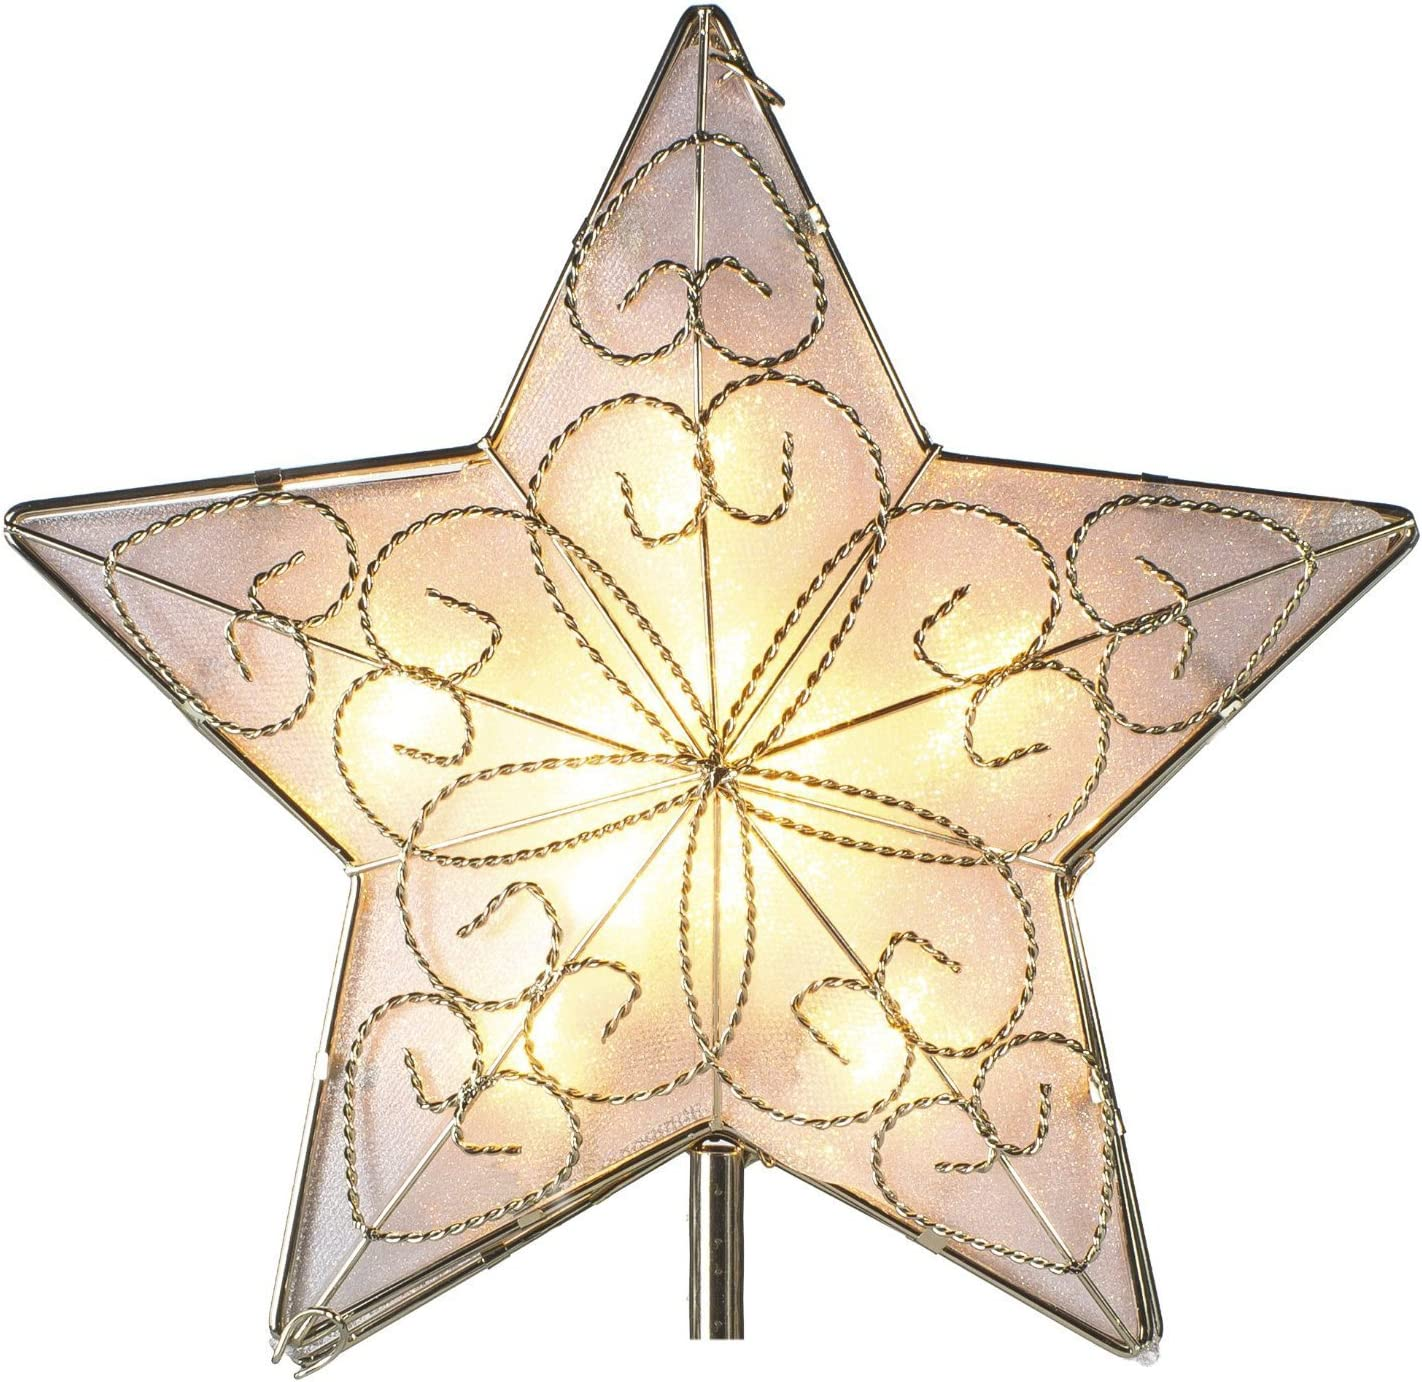 Kurt Adler 10 Light Indoor UL Star Treetop - Fits Perfectly On Christmas Tree Silver Trimming Pattern